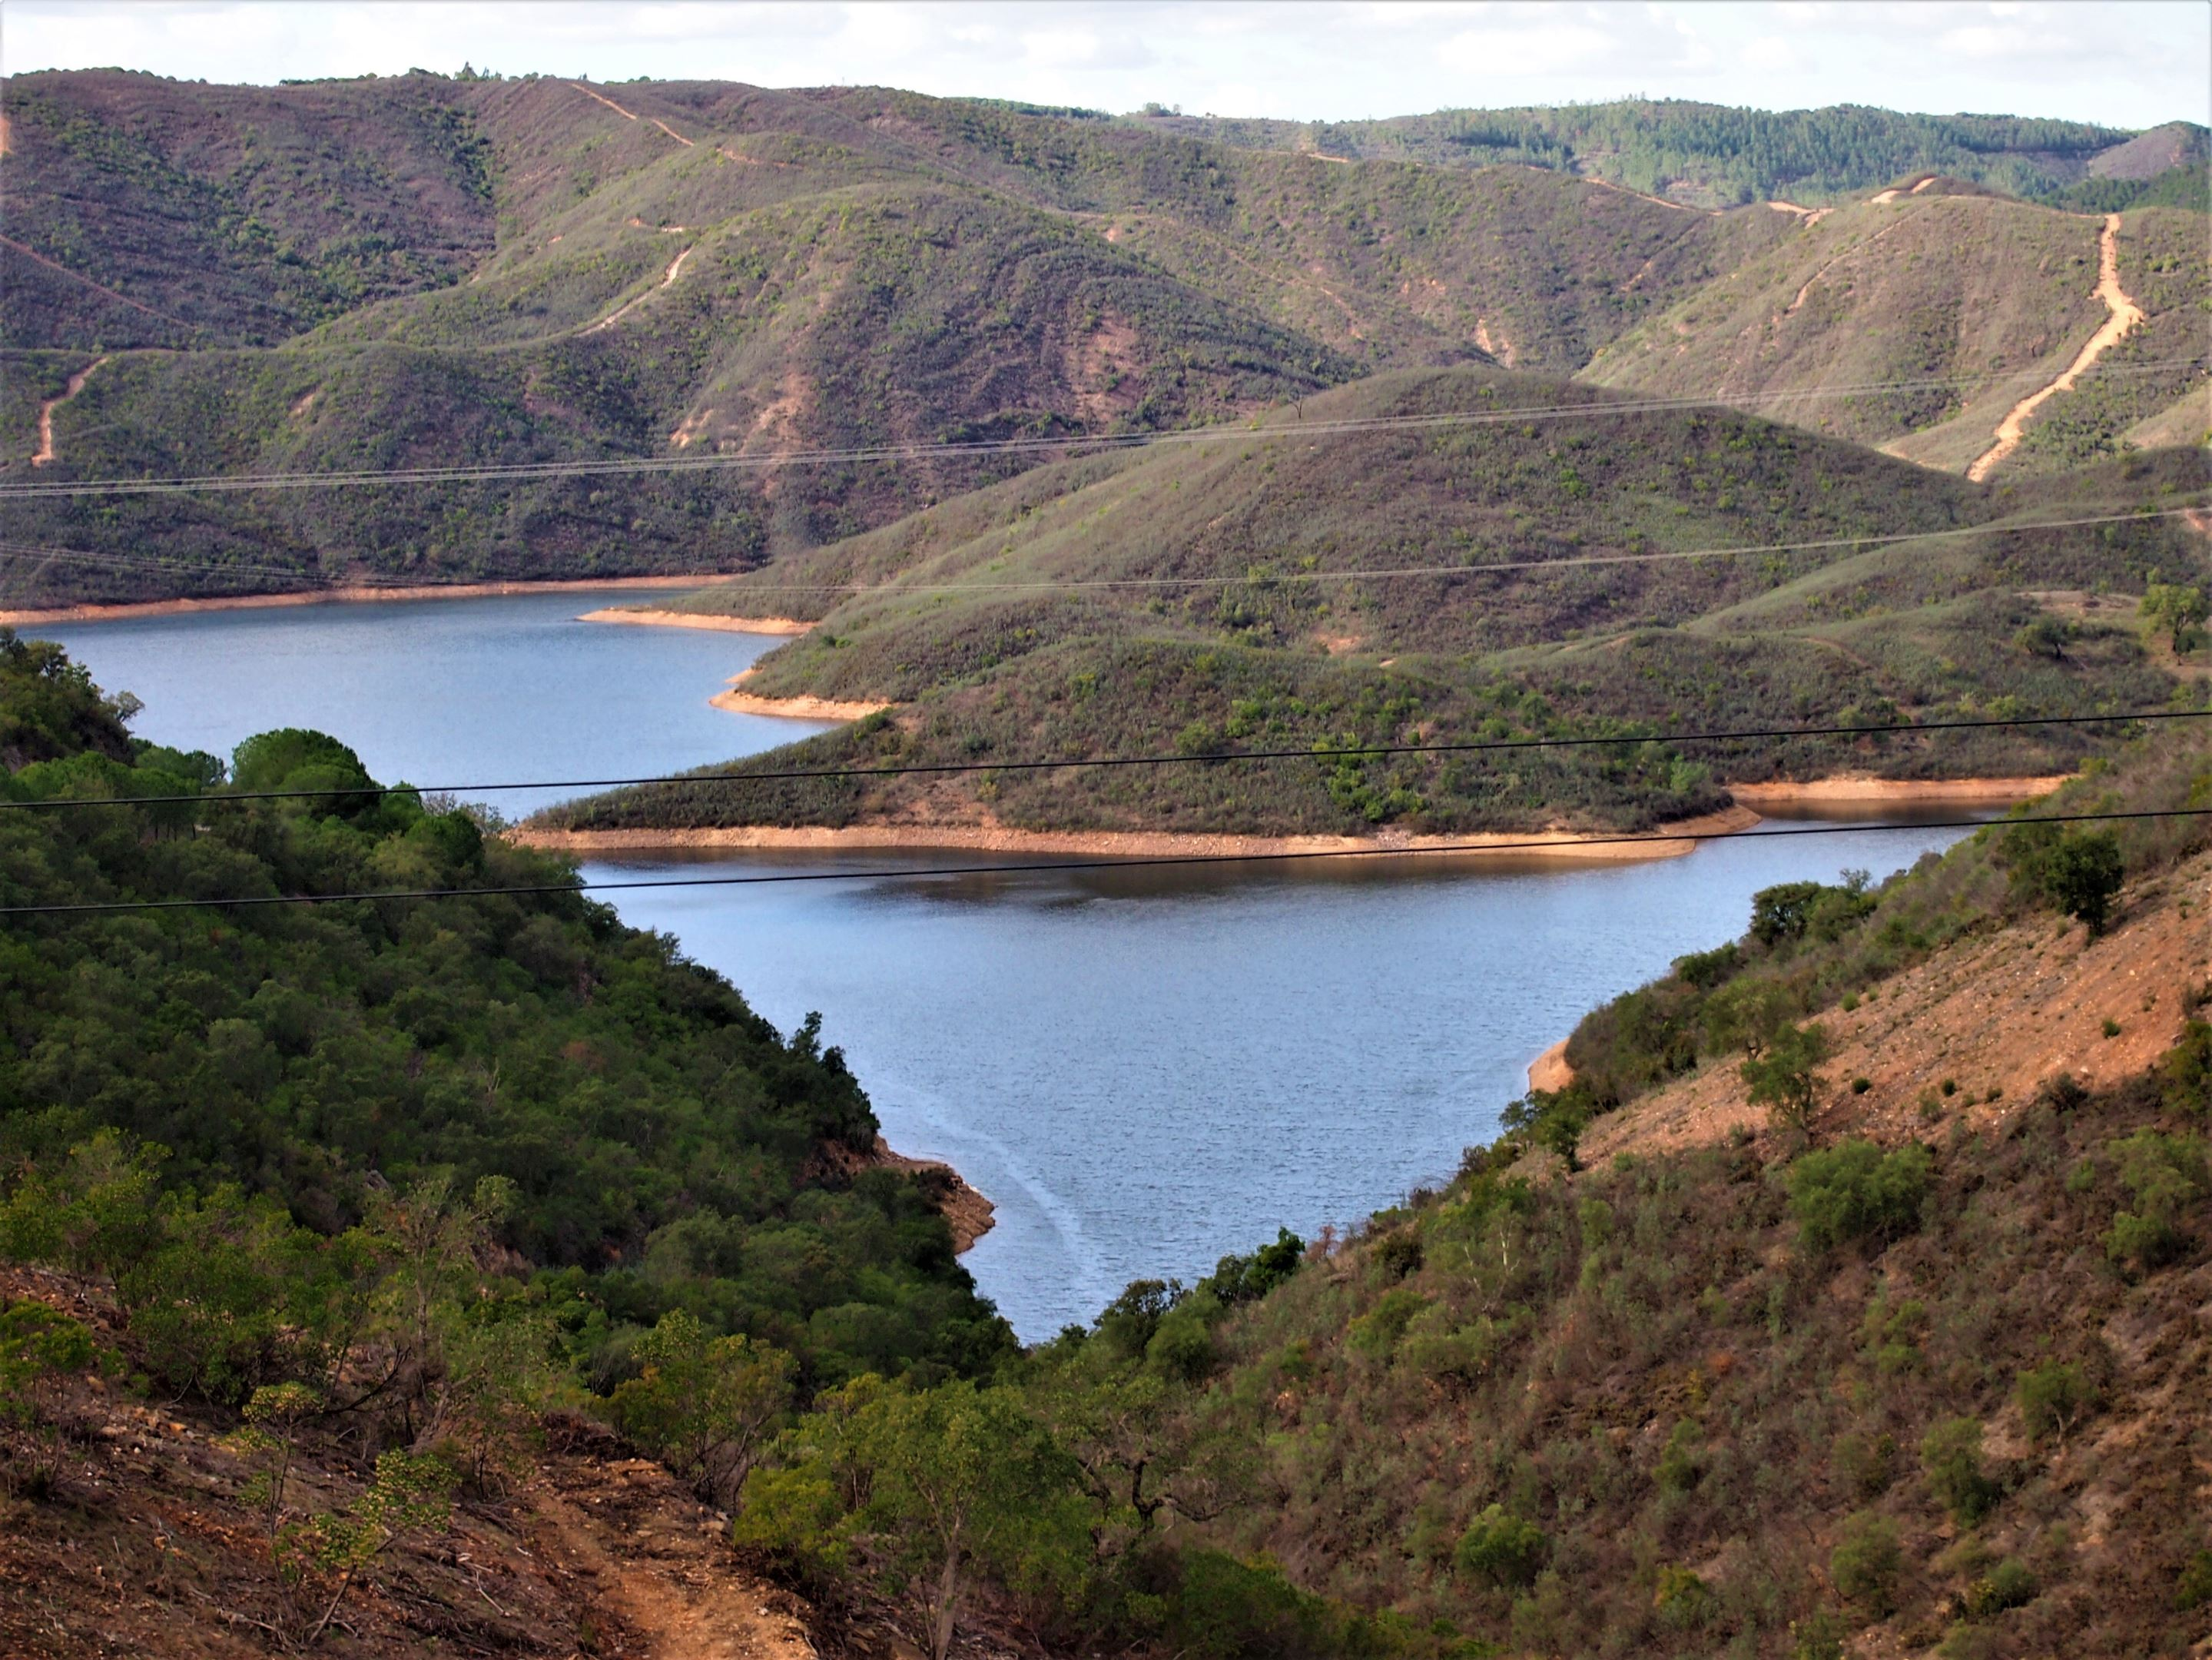 Barragem do Funcho, Algarve